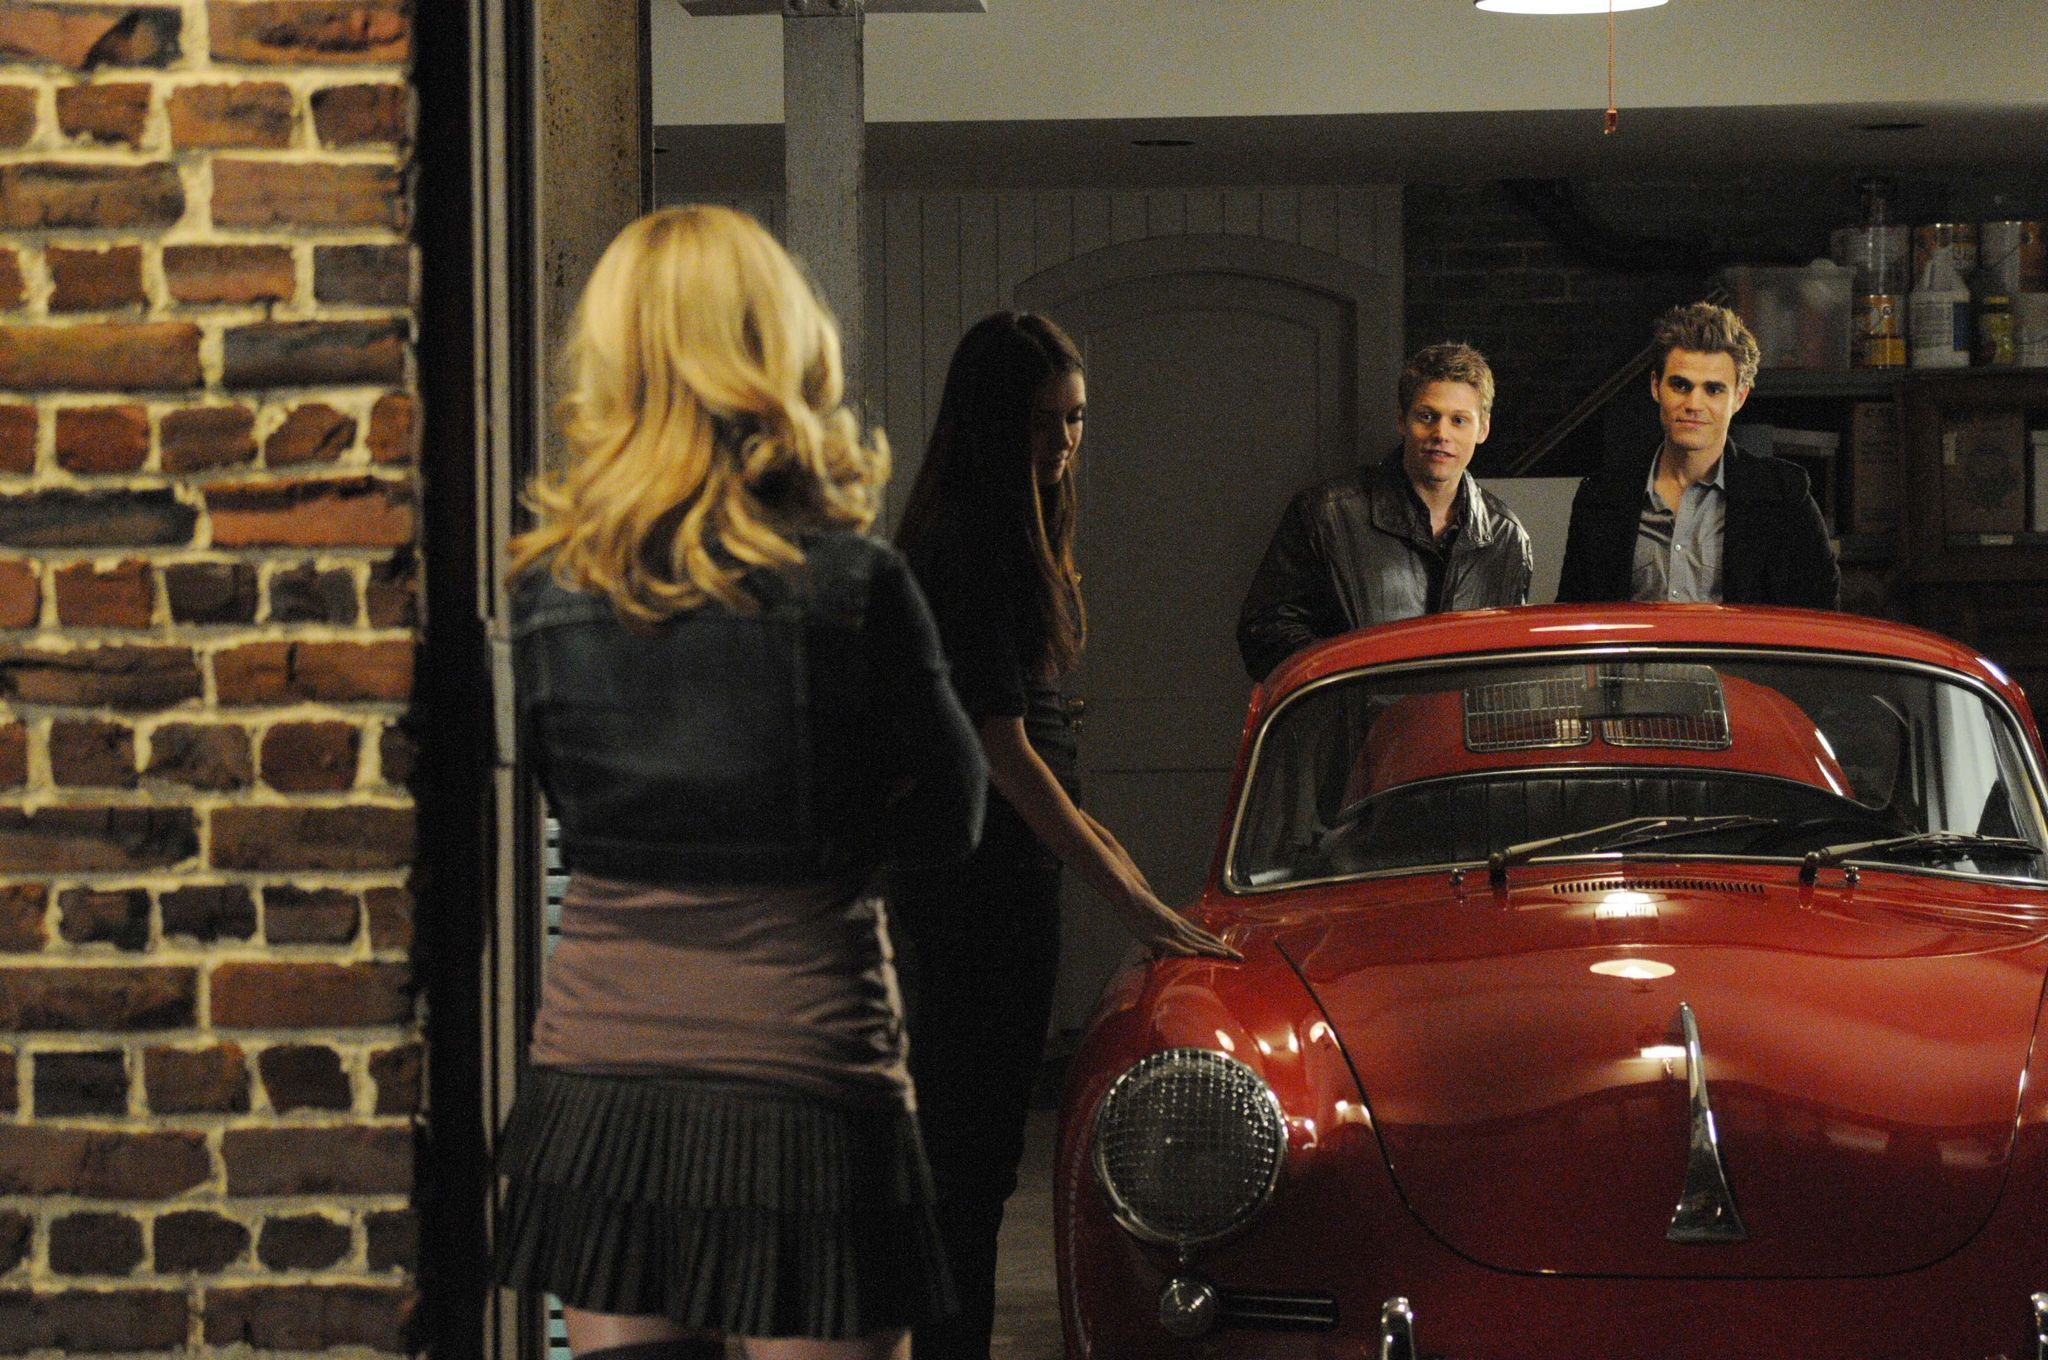 New promo photos for 1.16 There Goes The Neighborhood